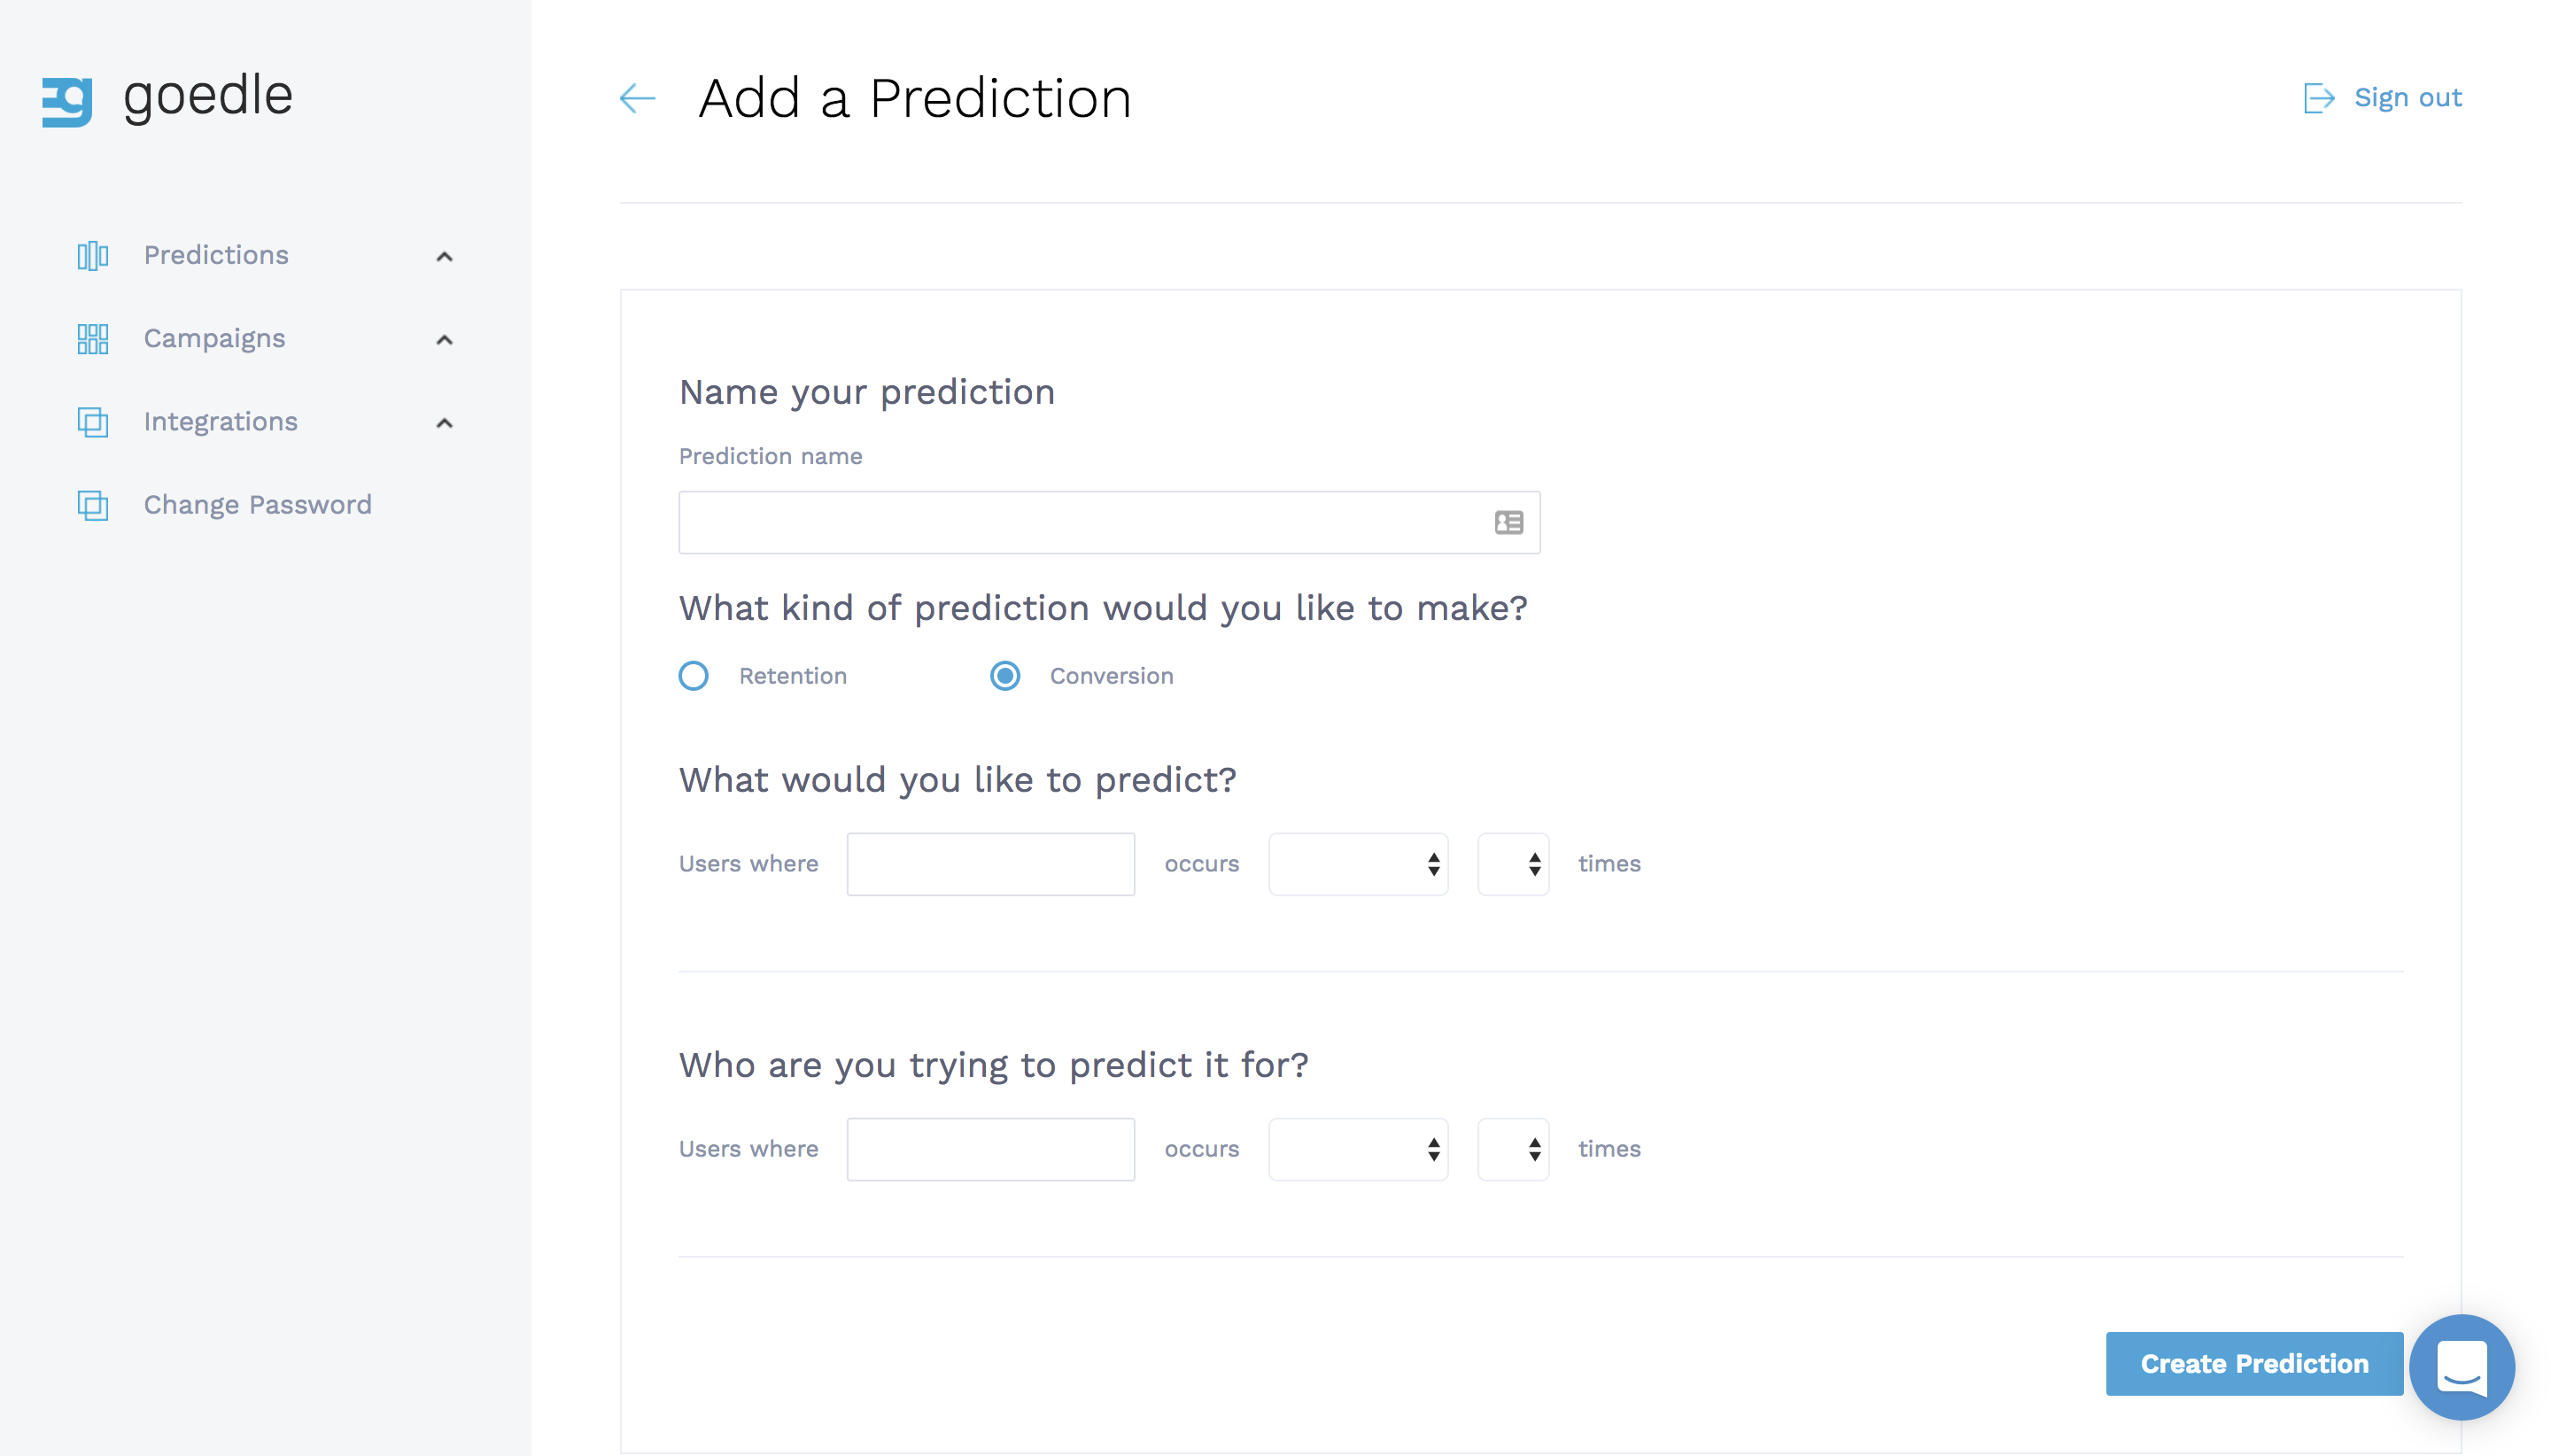 Create your own predictions, such as for churn or conversion.